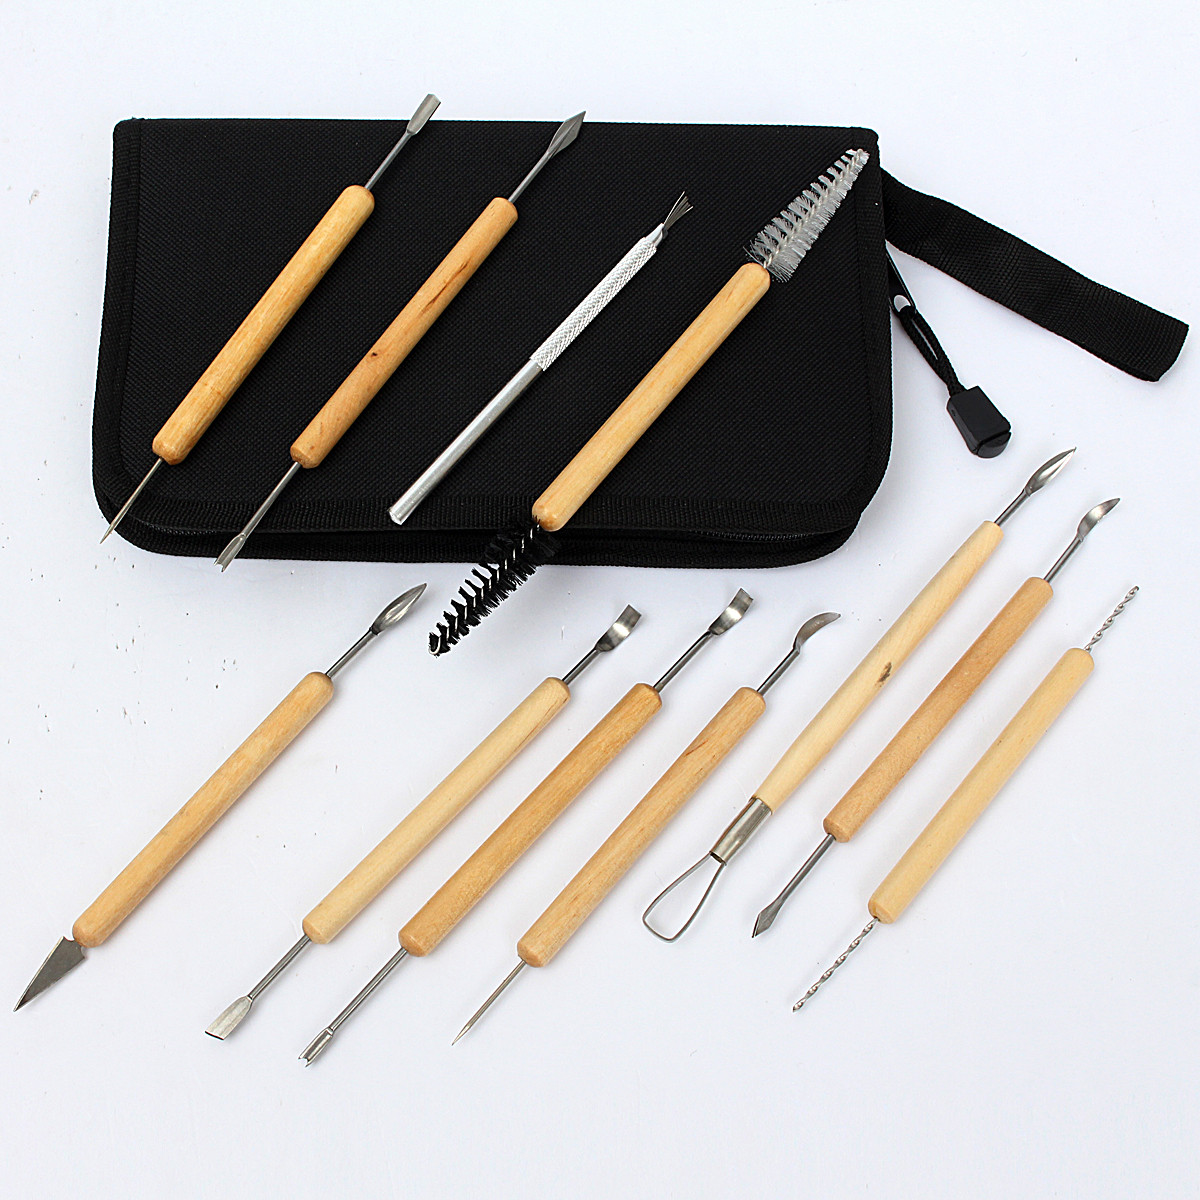 11pcs Clay Sculpting Wax Carving Pottery Tools Shapers Polymer Modeling Set